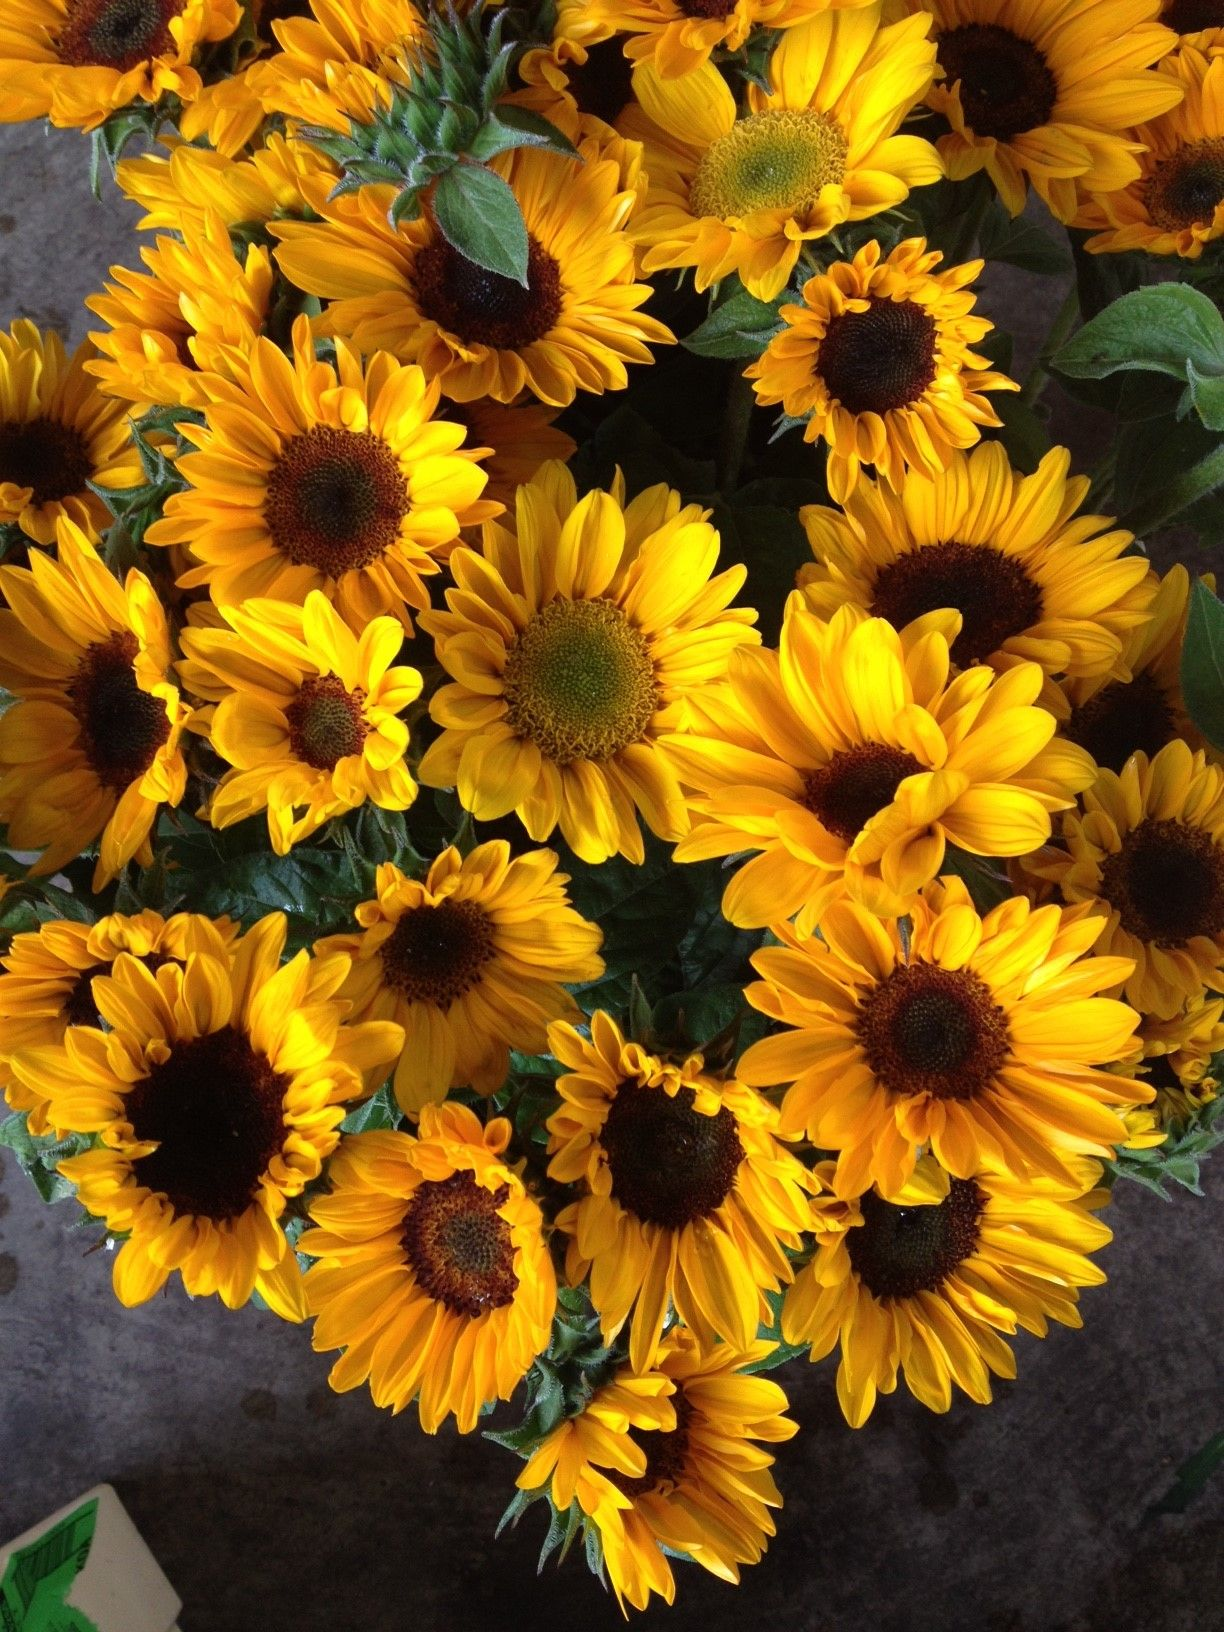 Small Sunflowers Called Sonjald In Bunches Of 10 Stems From The